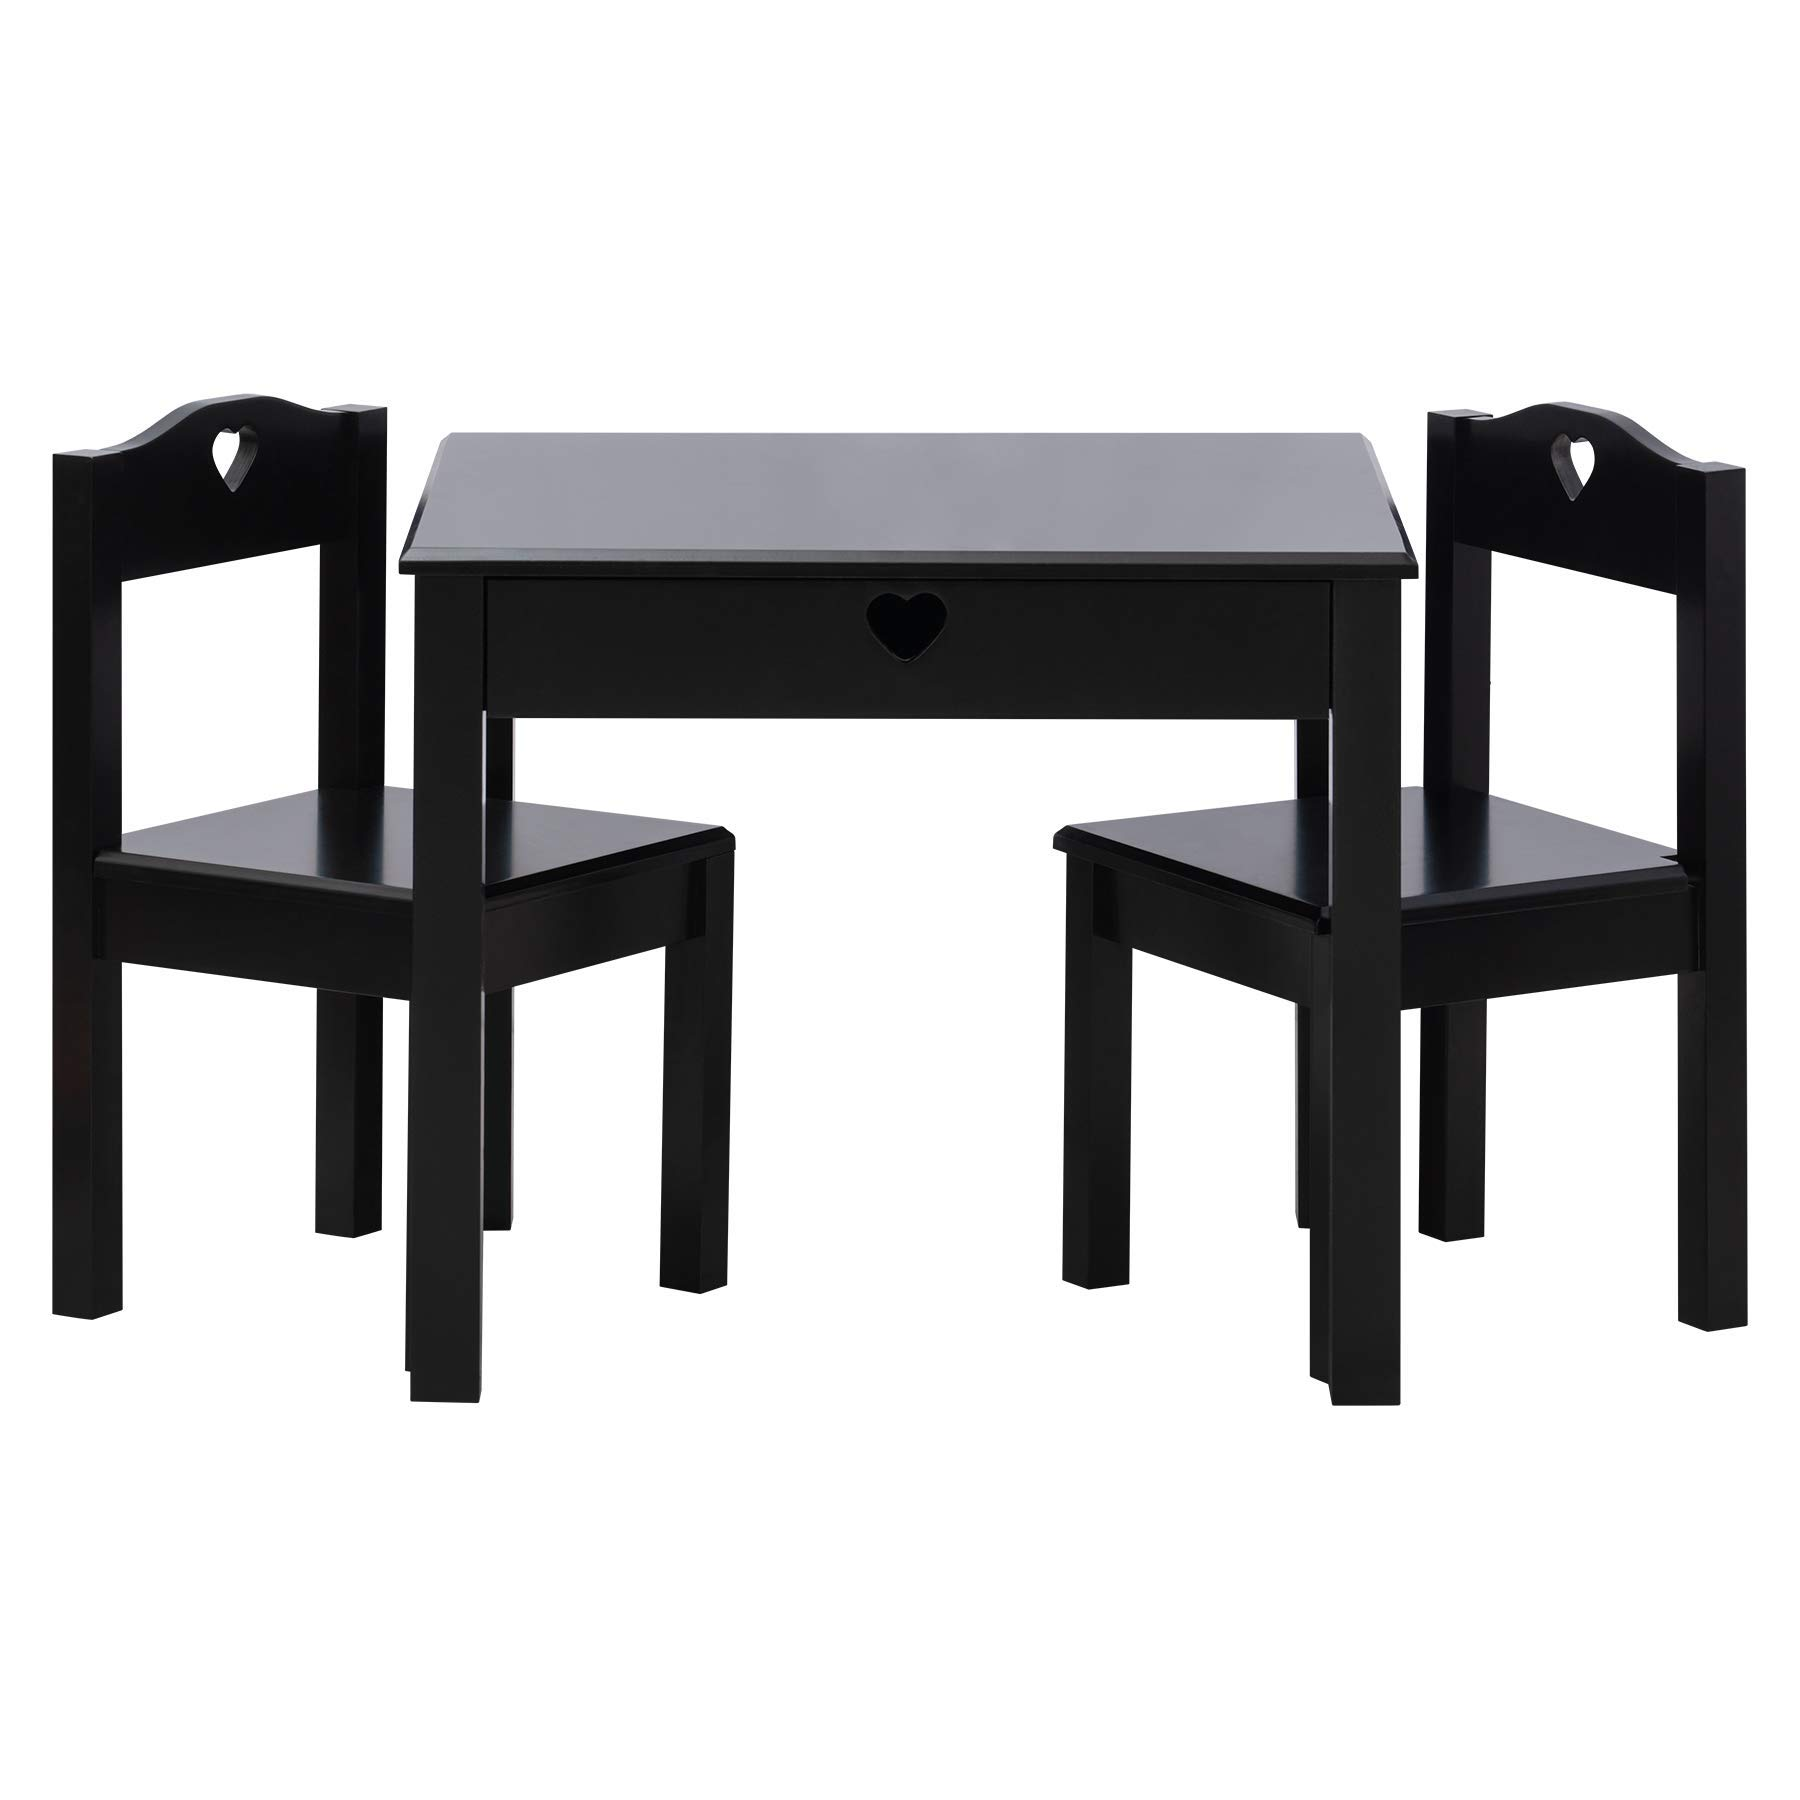 Fineboard FB-KT01-BK 2 Chairs Table for Kids Room, Black by Fineboard